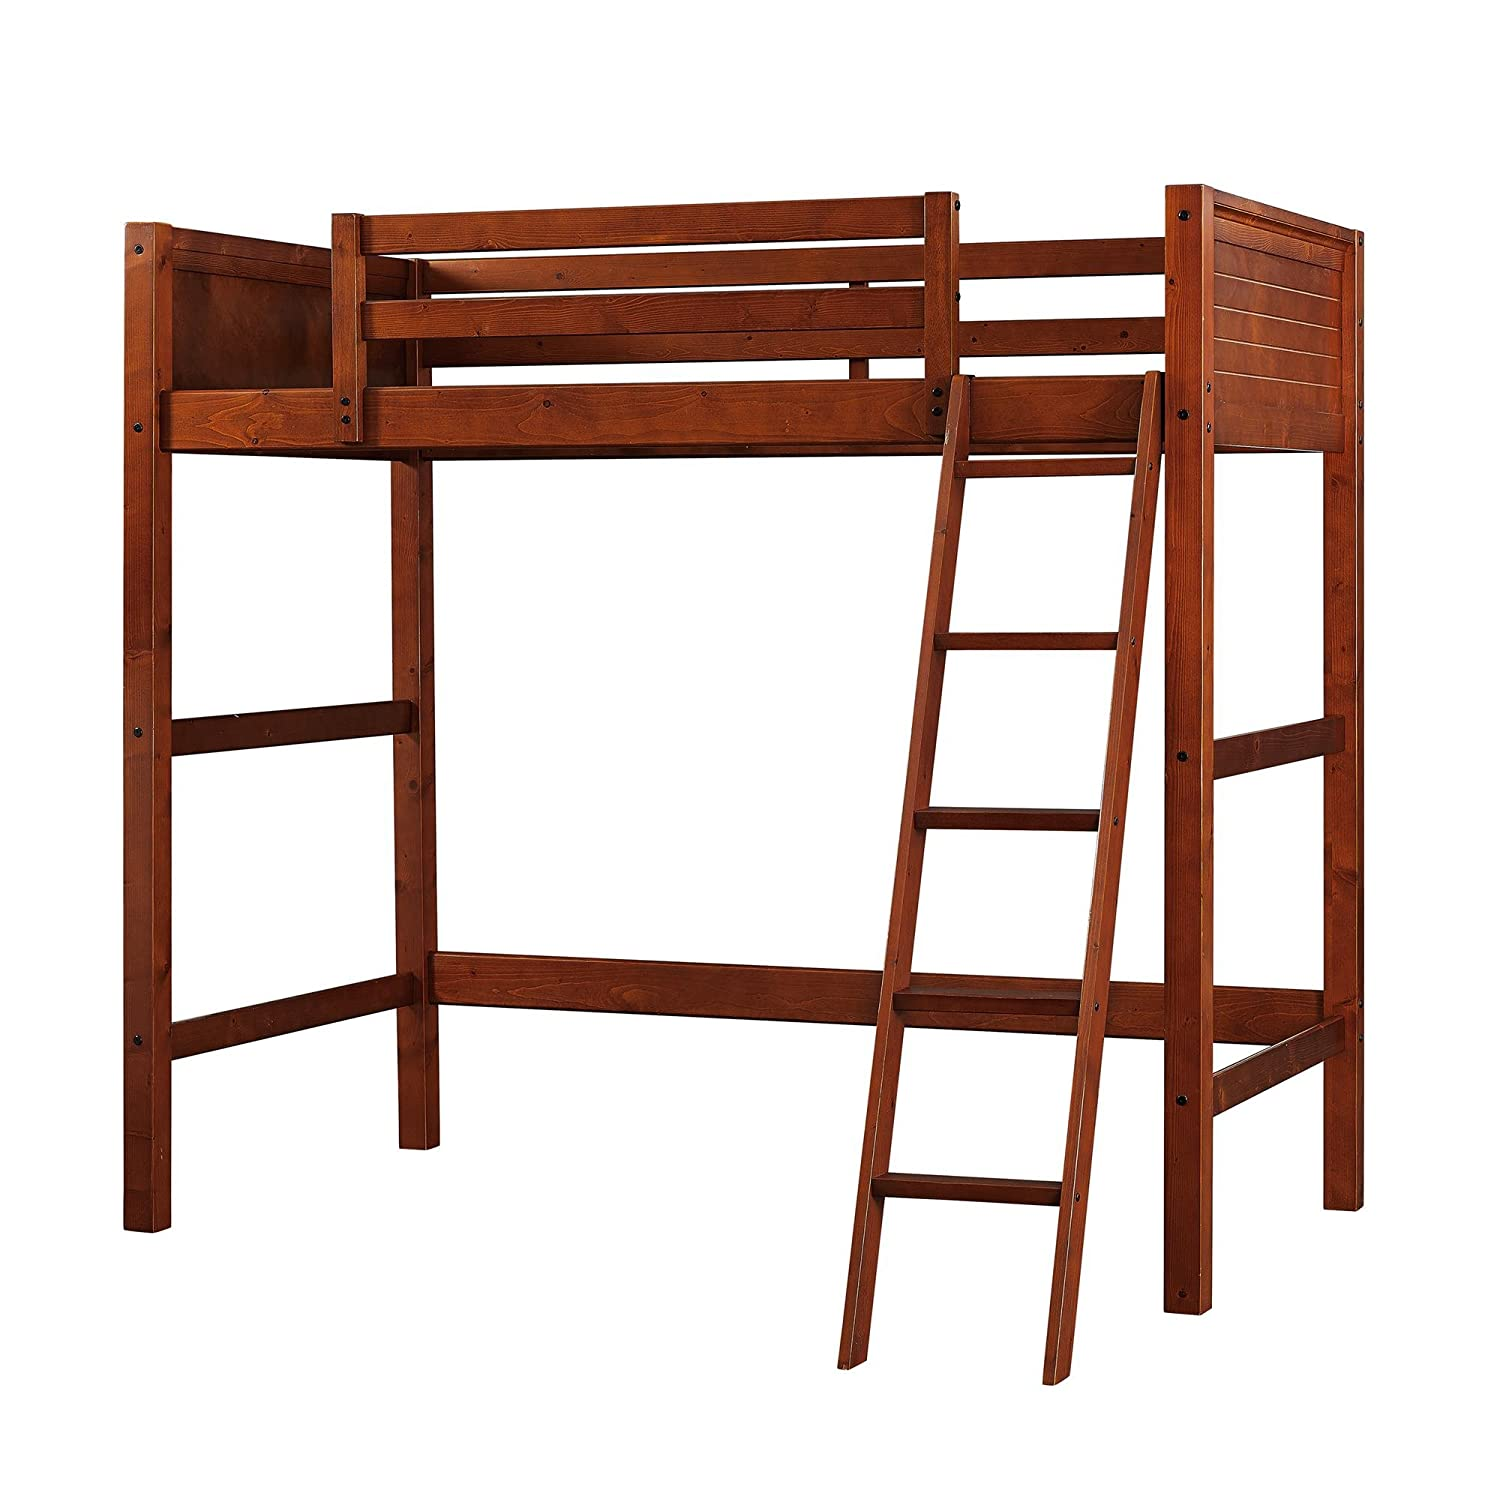 Twin wood loft style bunk bed walnut color bedroom furniture for kids and teens the loft bed includes a solid panel headboard and footboard and ladder